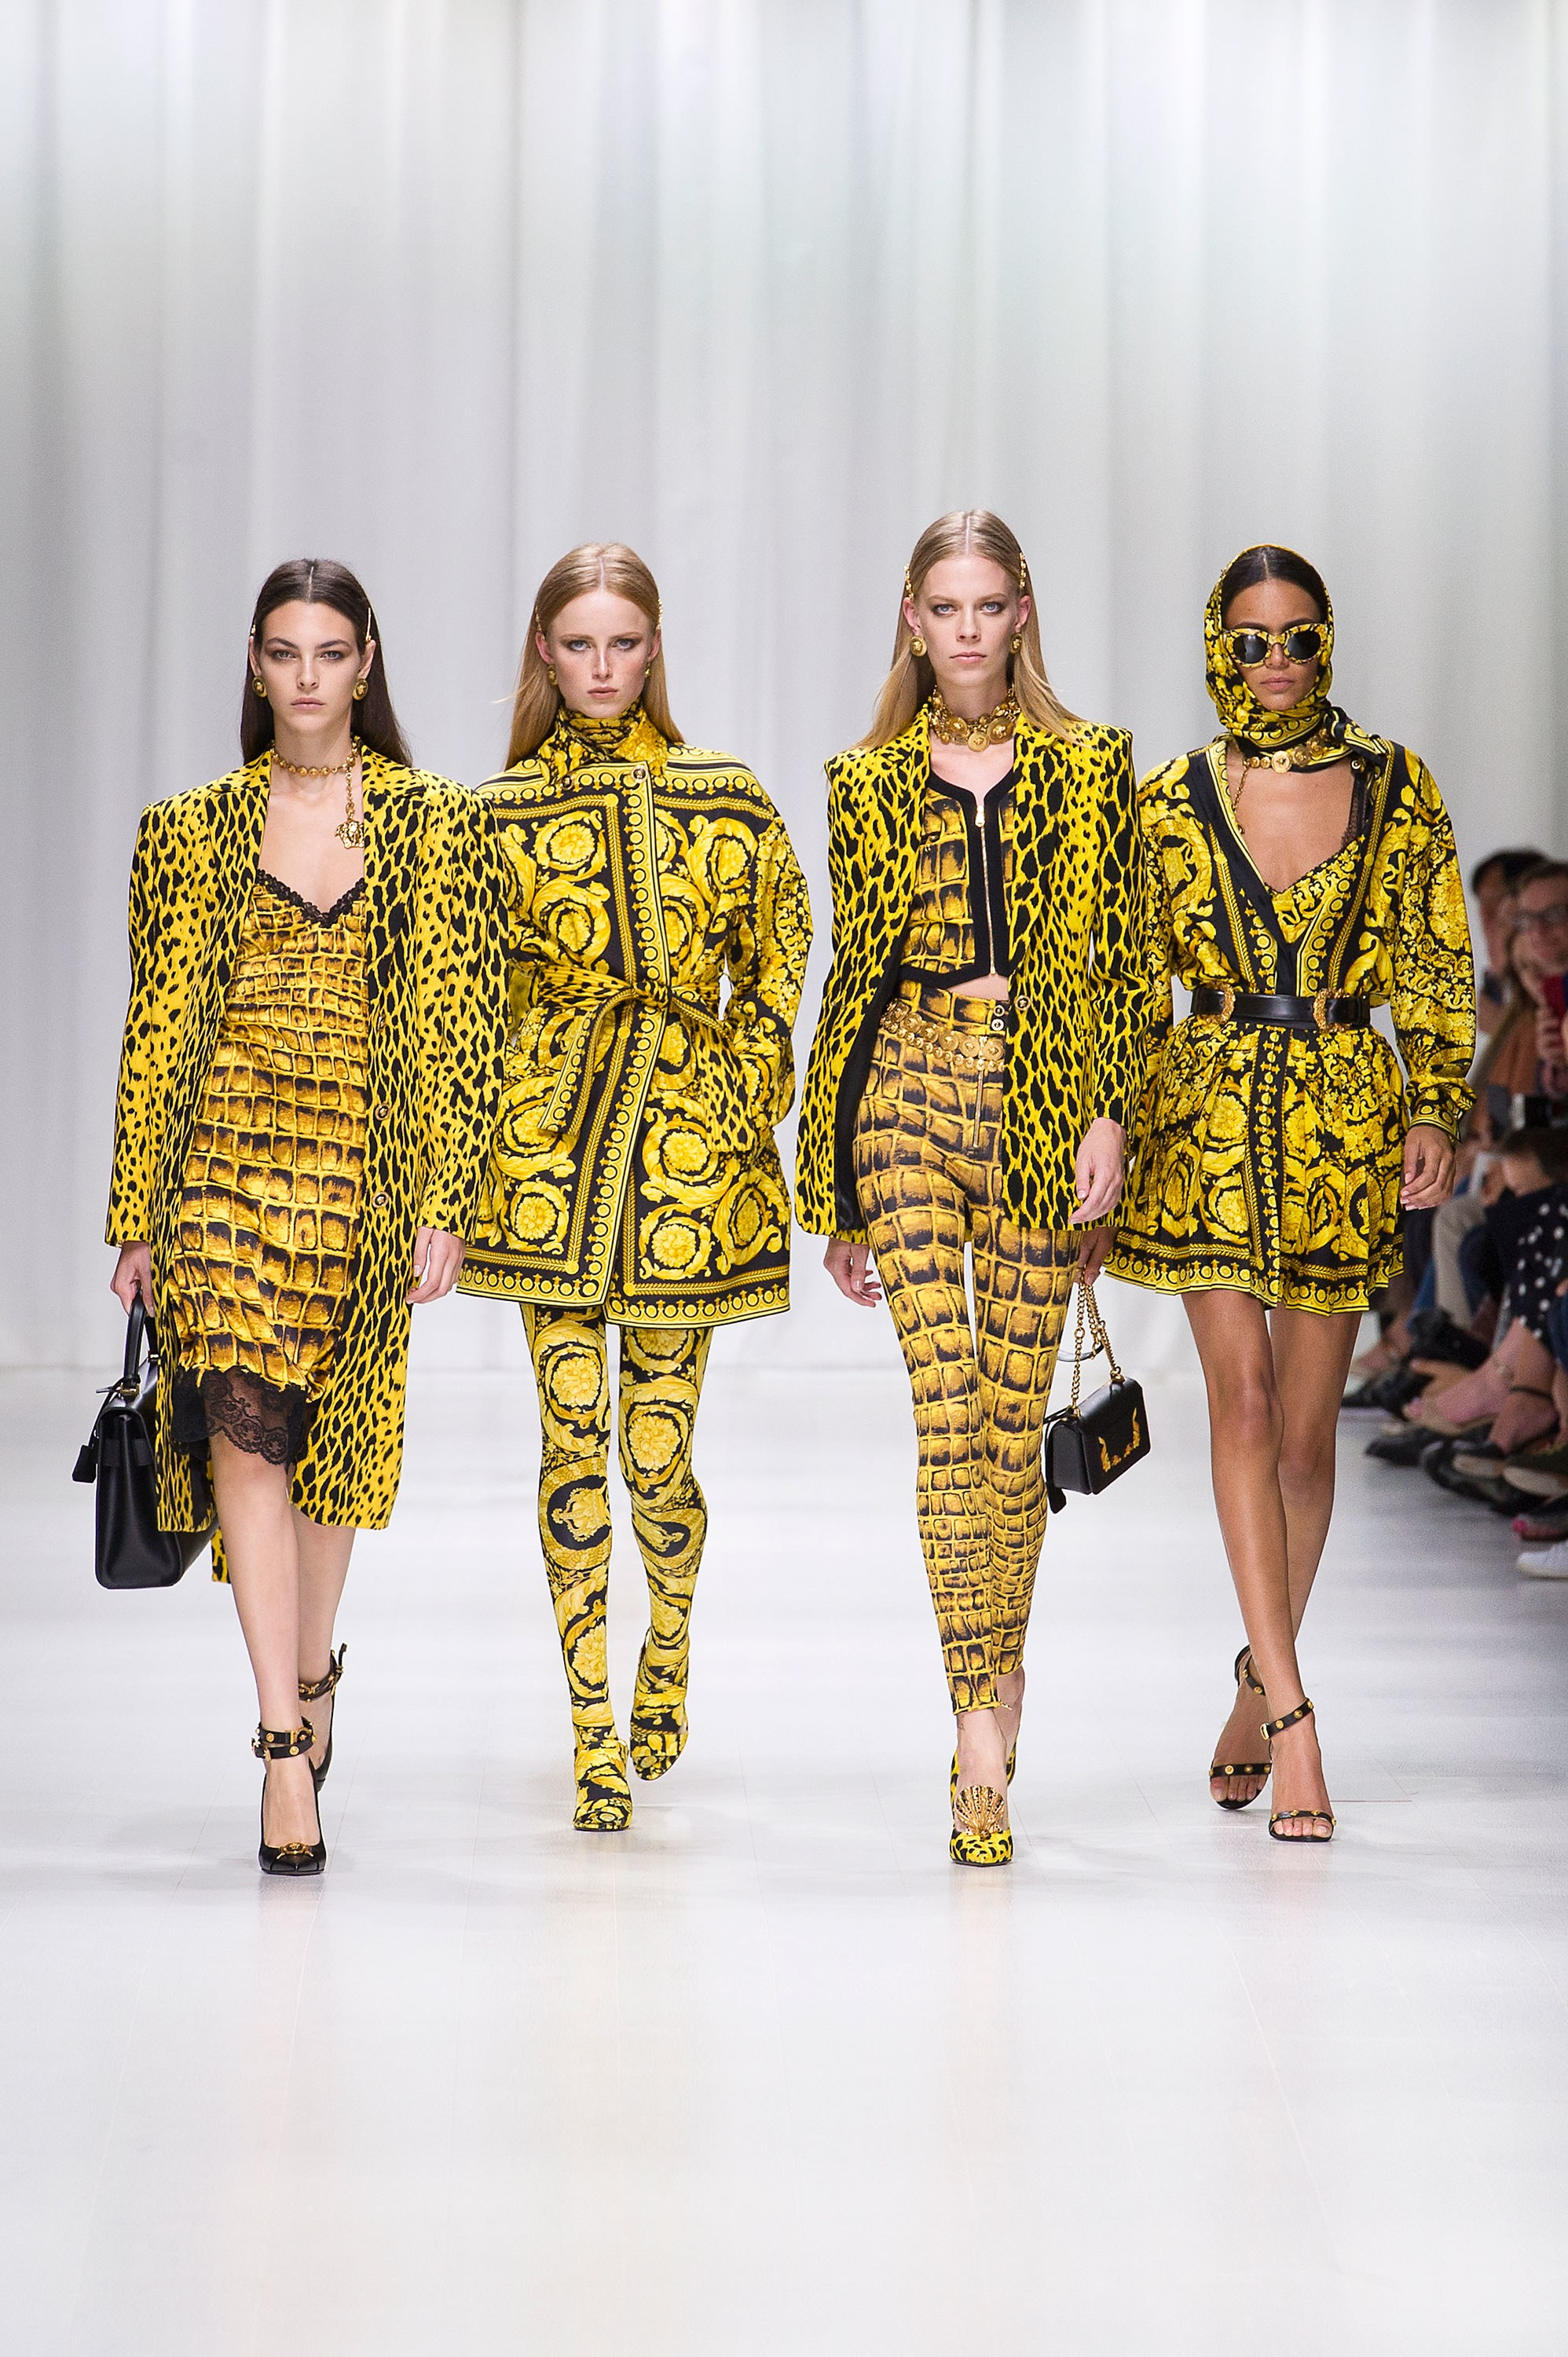 versace women SS18 1 1 Fashion Month Favorite Designers 2017